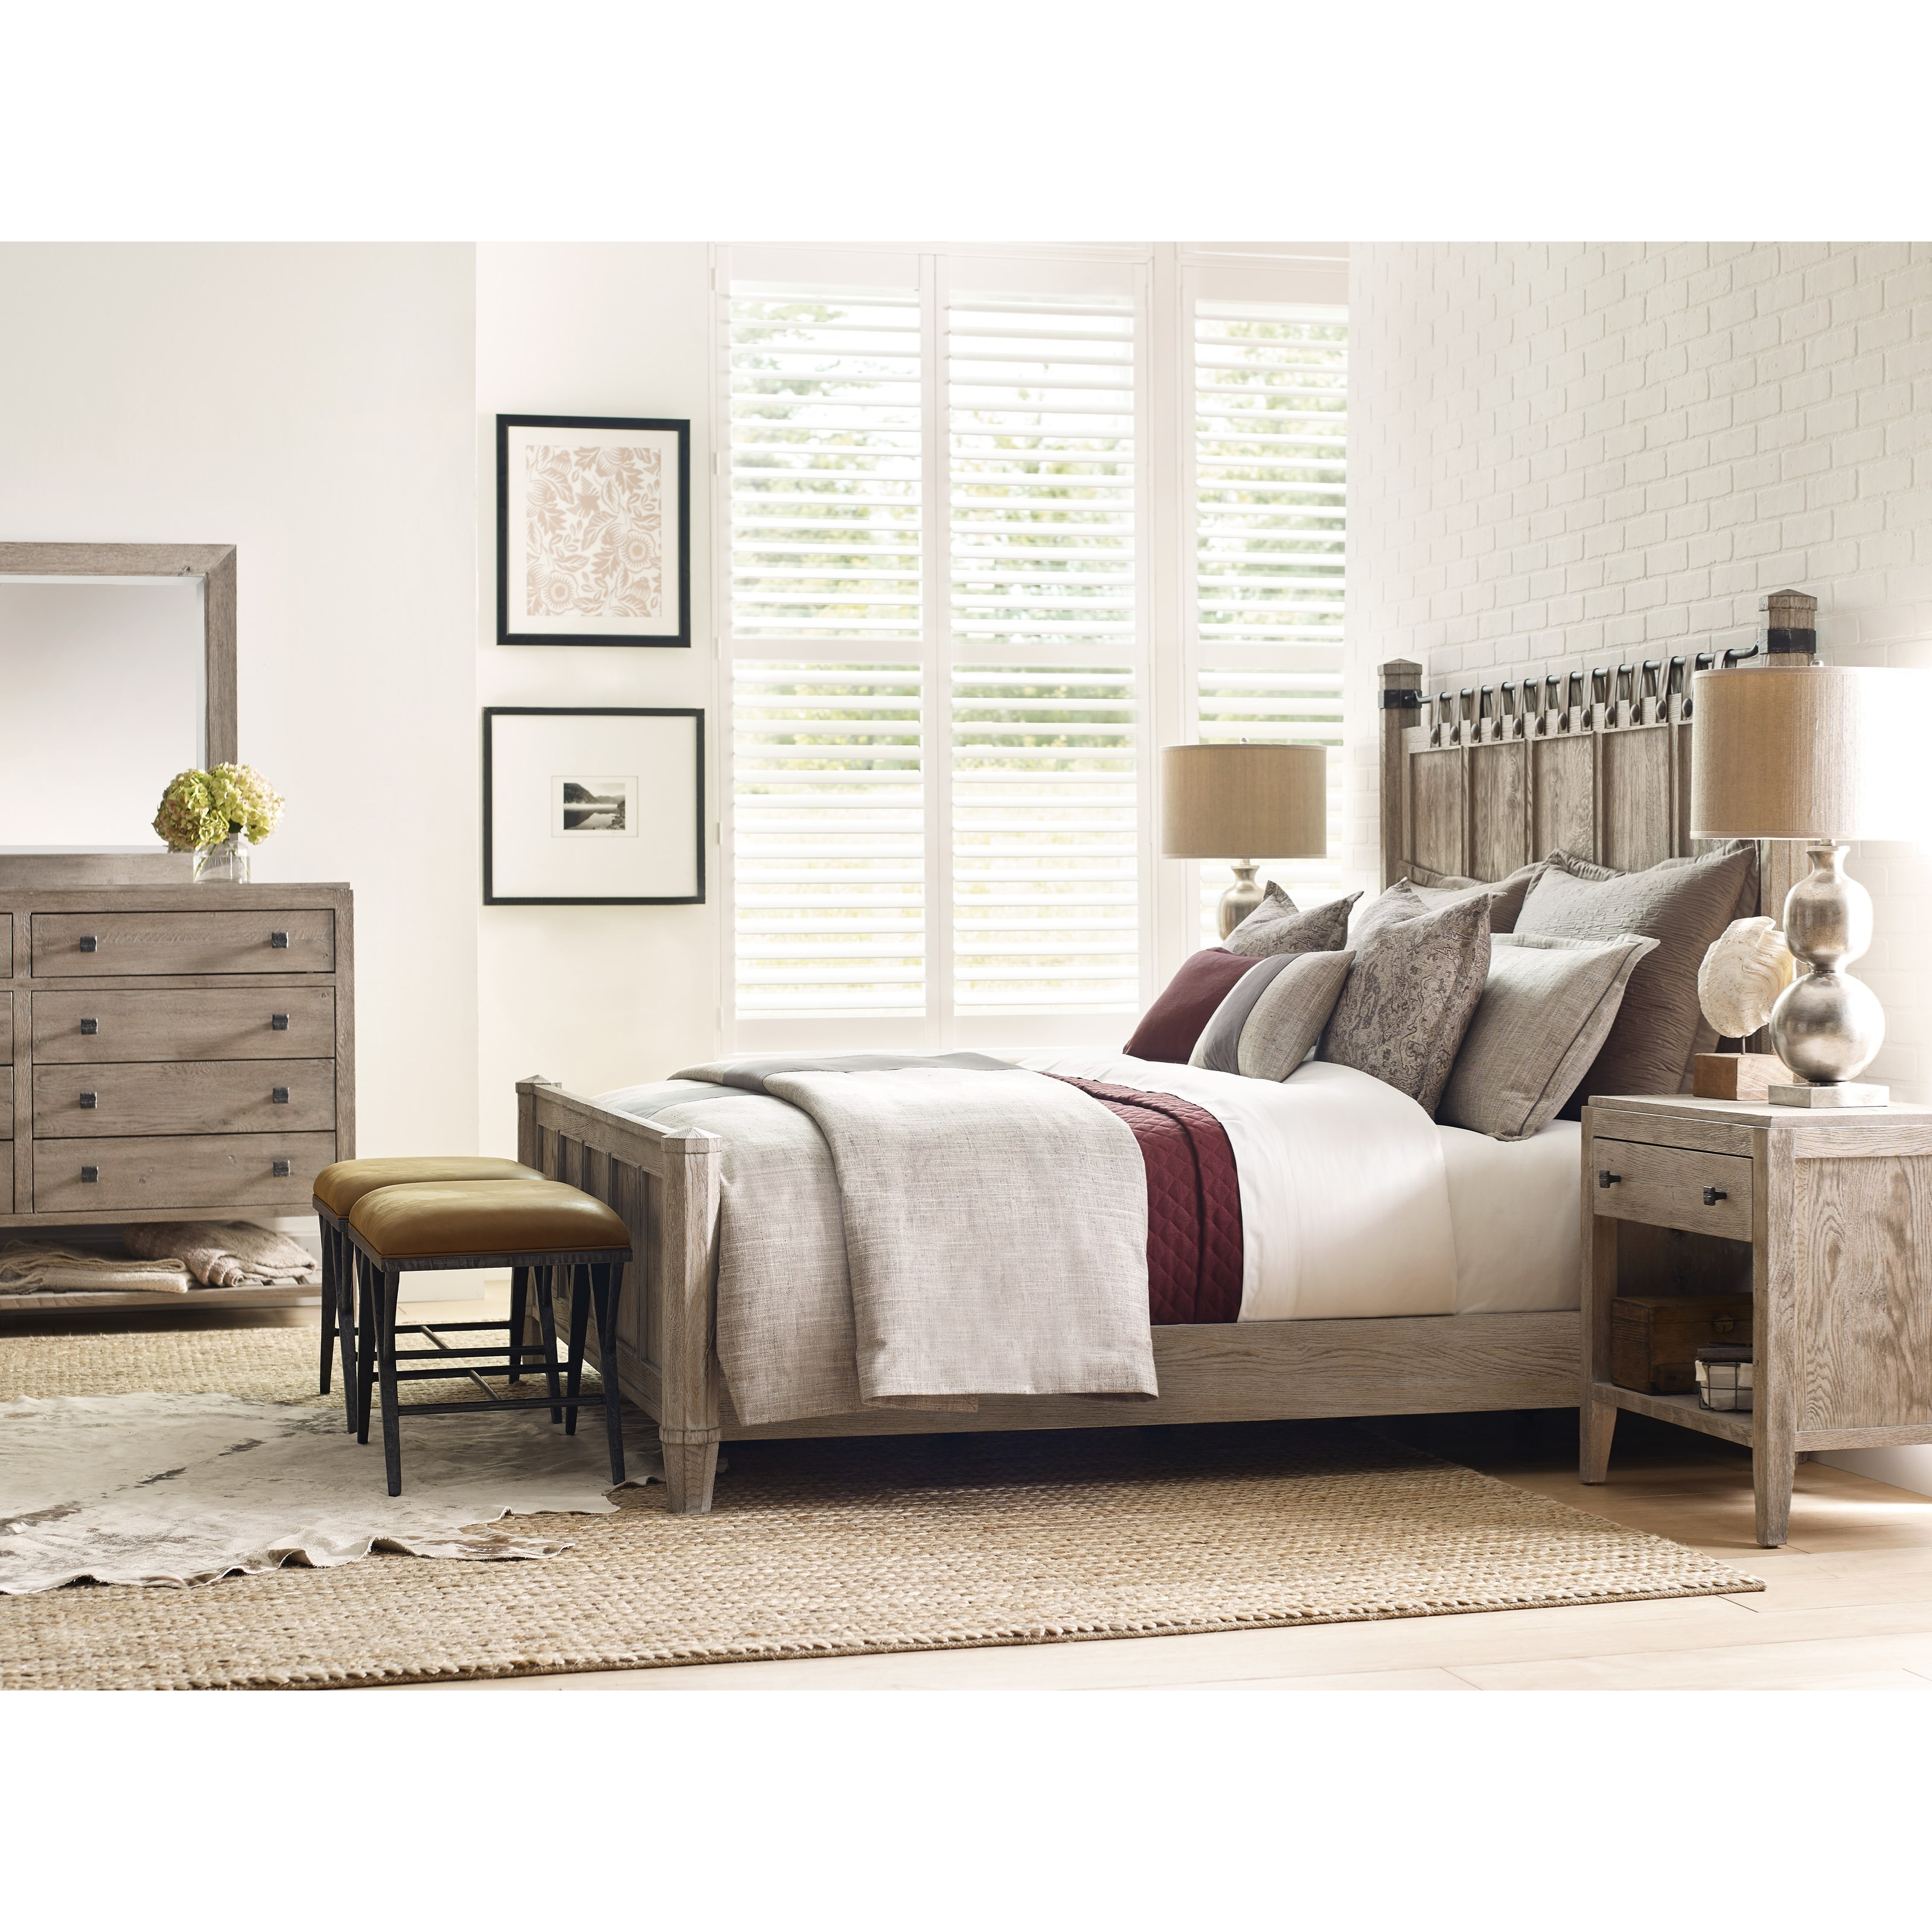 Trails Queen Bedroom Group by Kincaid Furniture at Johnny Janosik